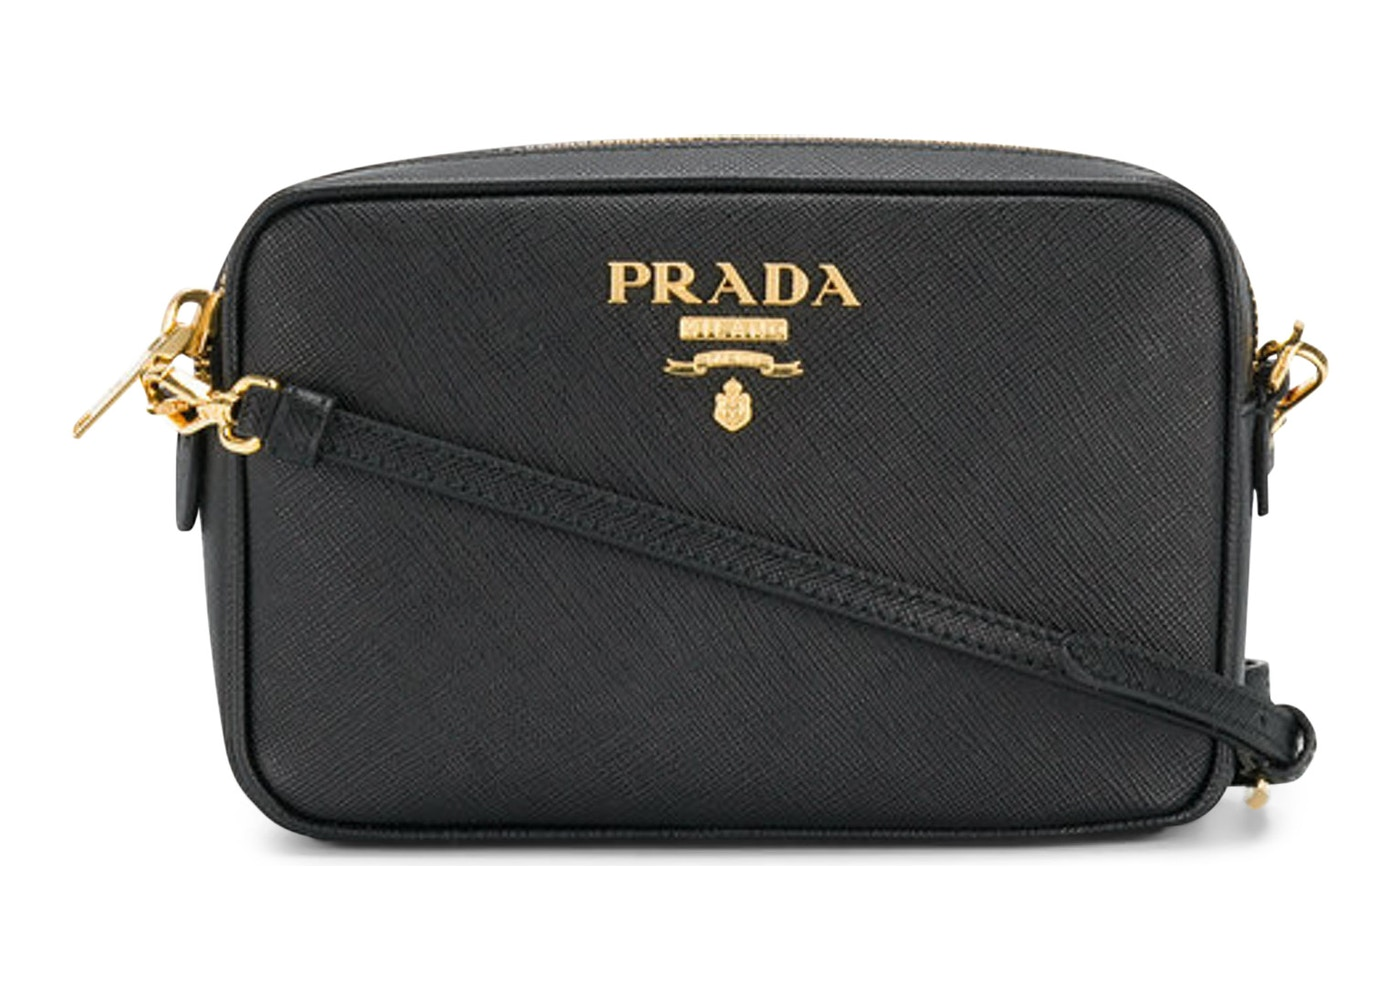 827780feef4 Buy & Sell Prada Handbags - Total Sold